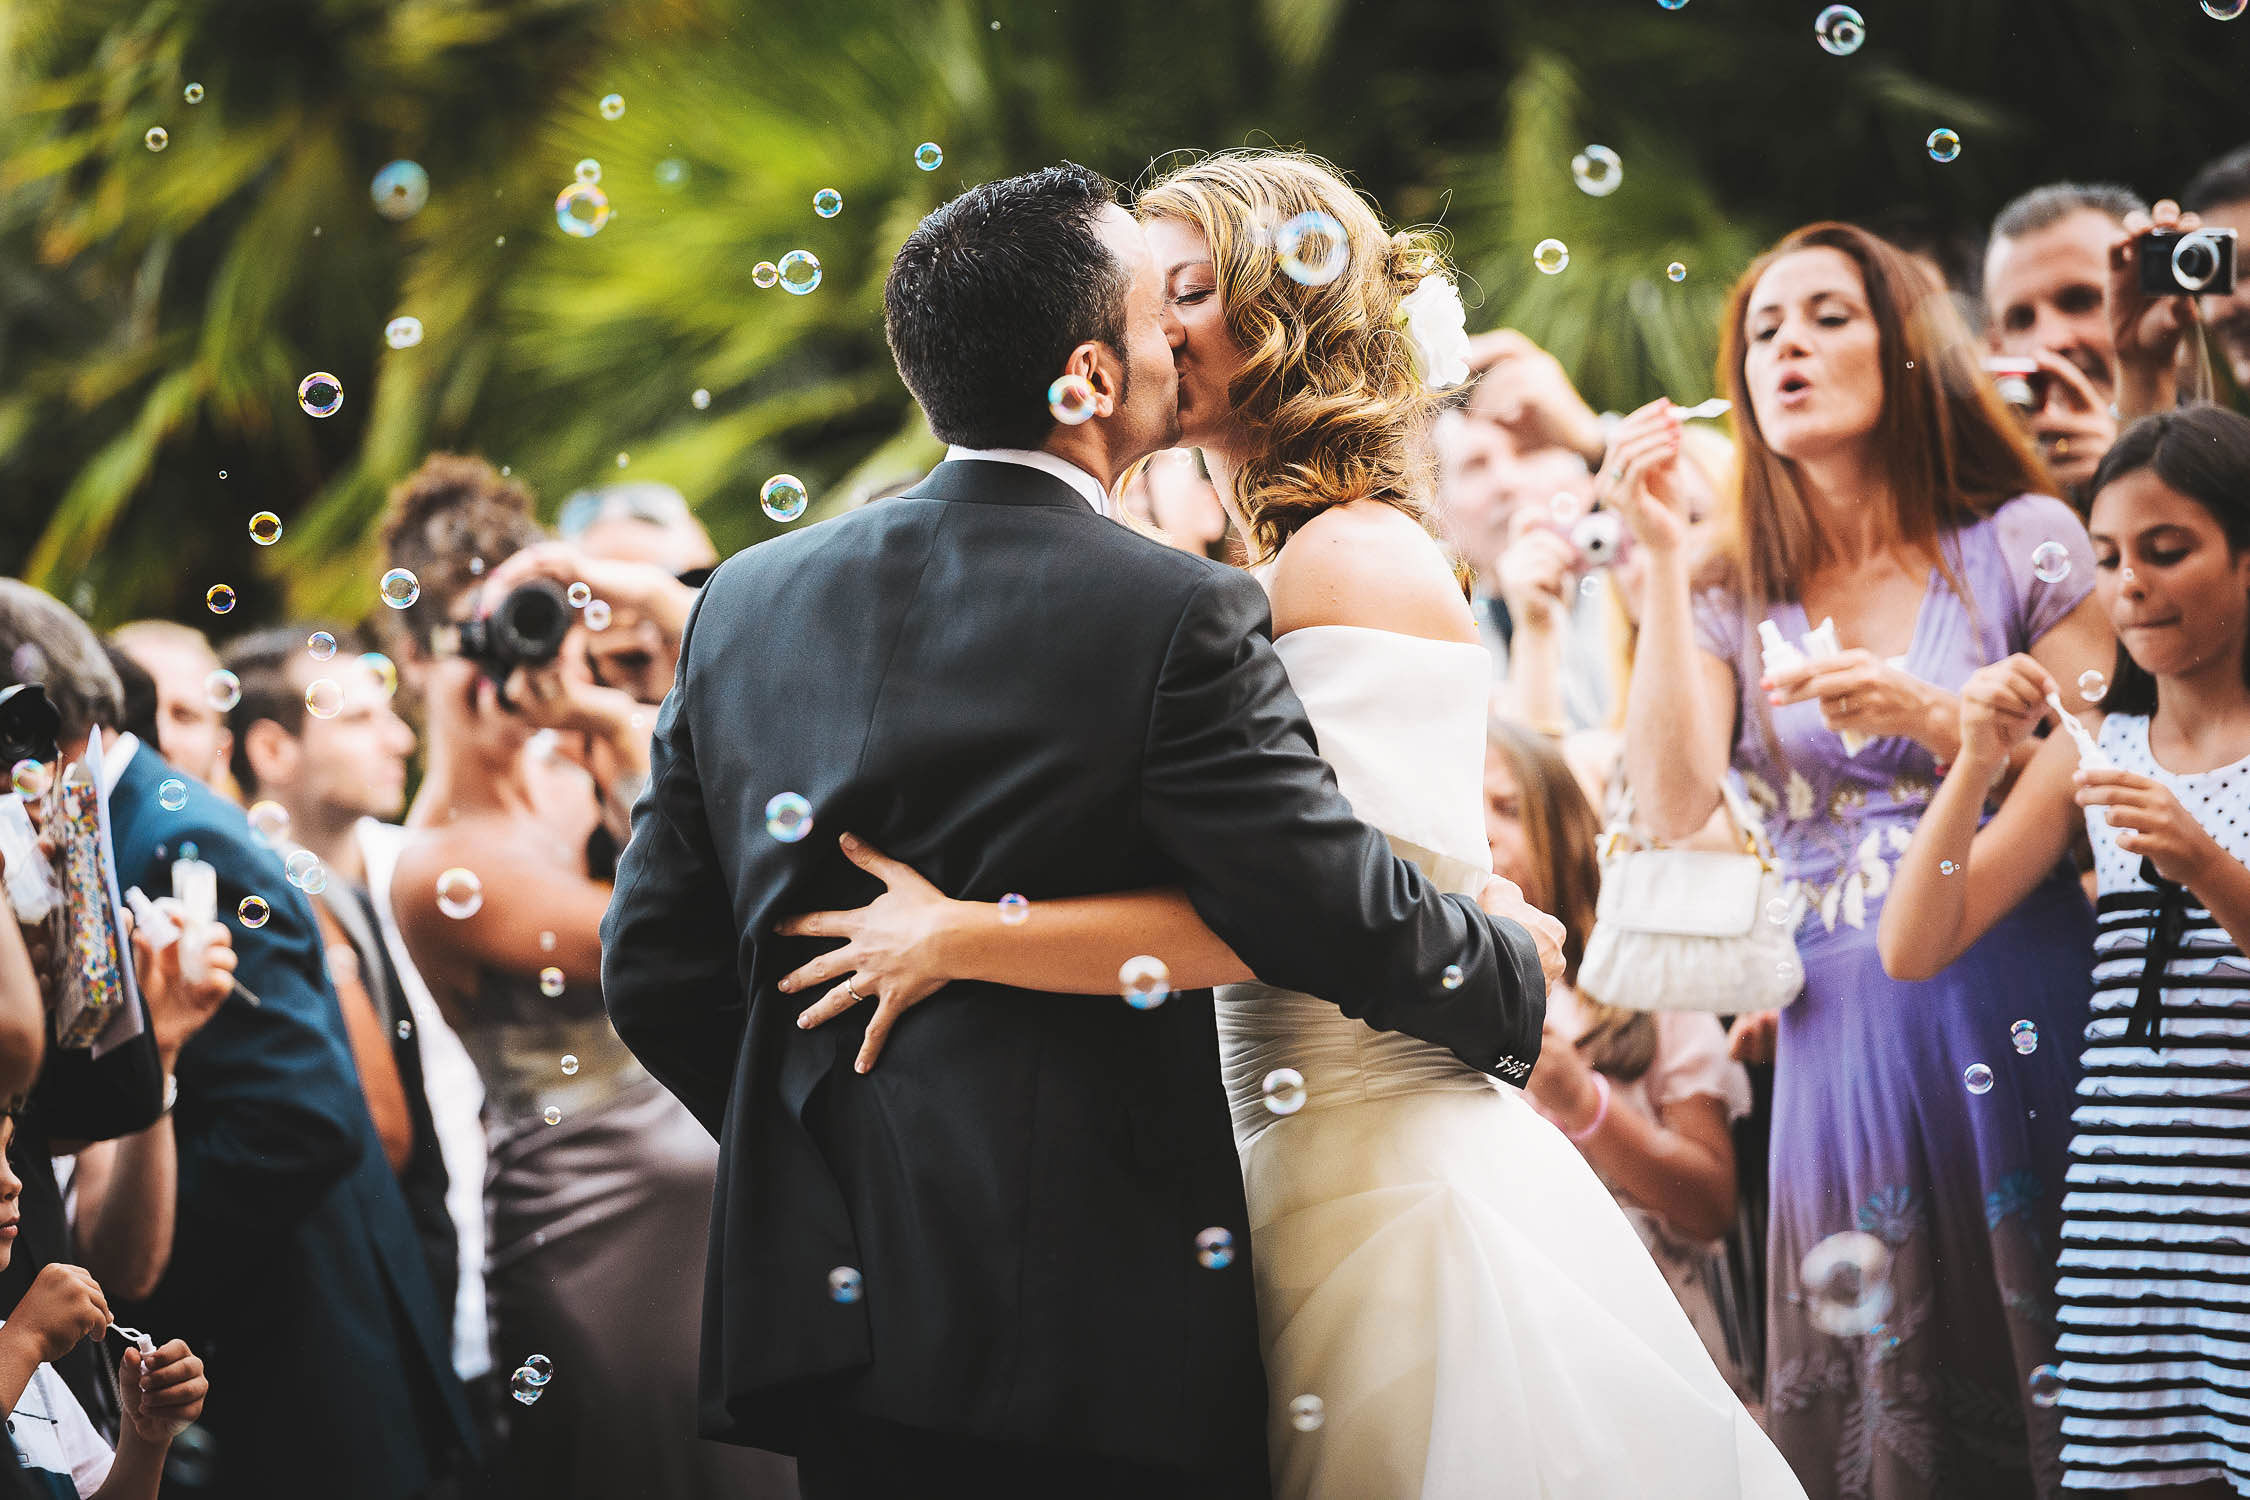 Love this kiss of Bride and Groom just married in Castello Odescalchi di Santa Marinella